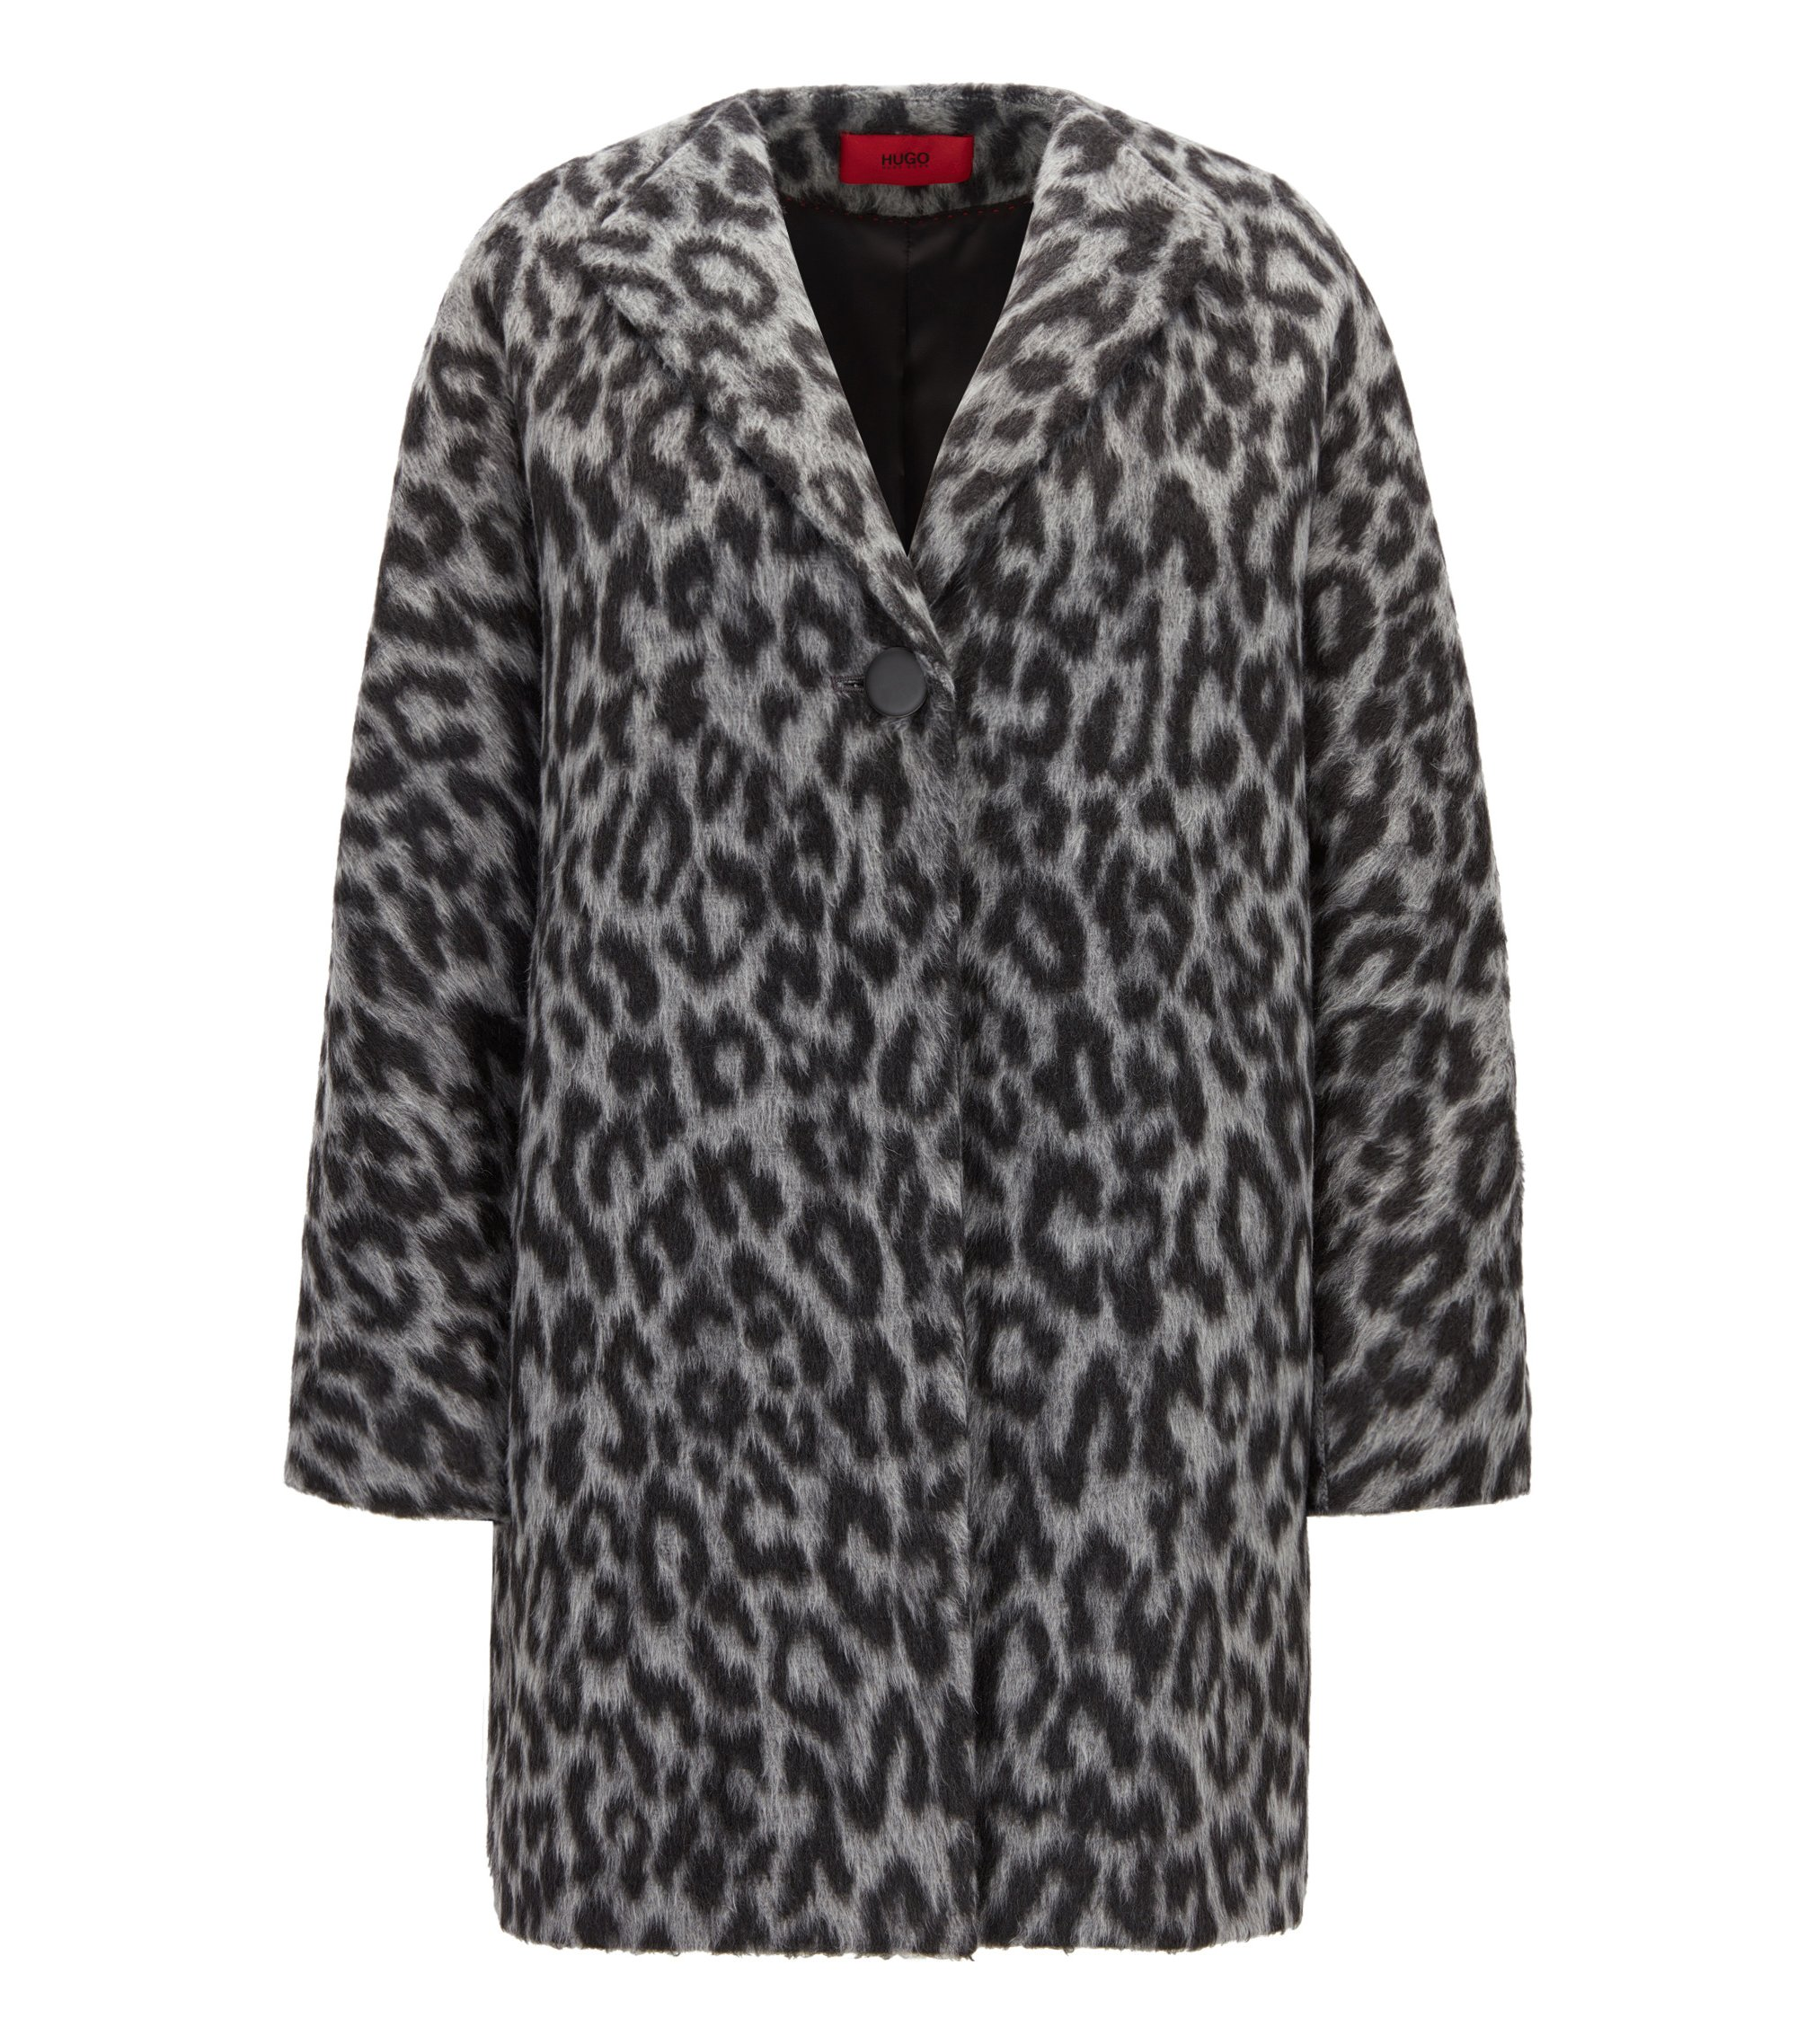 Oversize-fit coat in two-tone cheetah print, Patterned